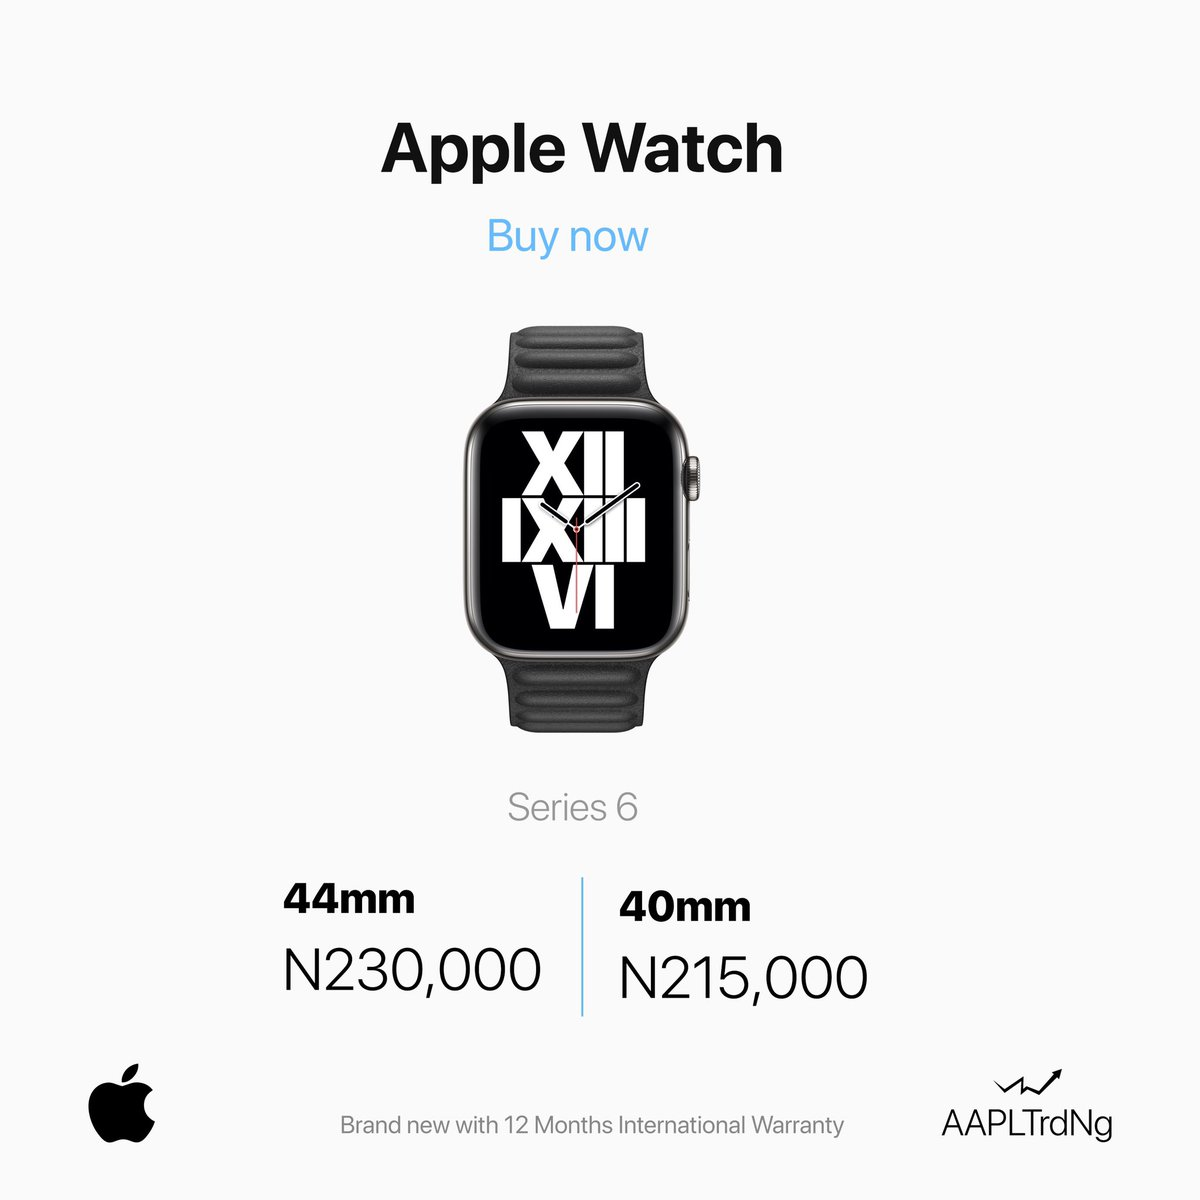 @apple Watch Series 6 GPS IN-STORE** @aapltrdng _ 40mm N215,000 44mm N230,000 _ Product Informtion _ Always-On Retina display with Force Touch _ GPS and GPS + Cellular Models _ 40mm 04 44mm case; Over 30 Percent Larger display _ https://t.co/CjxaWAvtNO